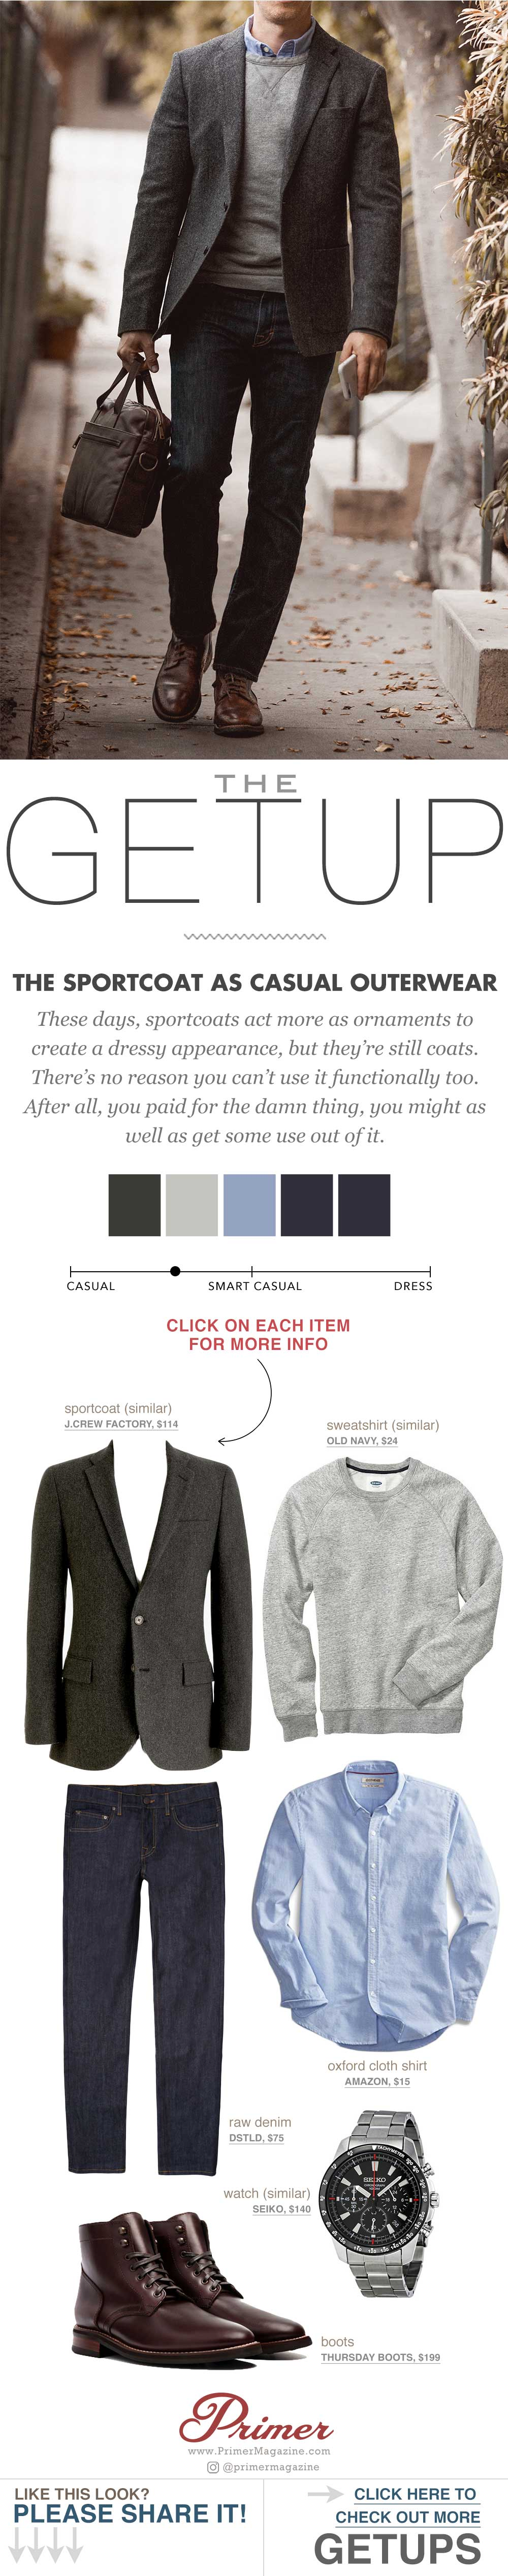 men sportcoat casual outfit inspiration the getup primer